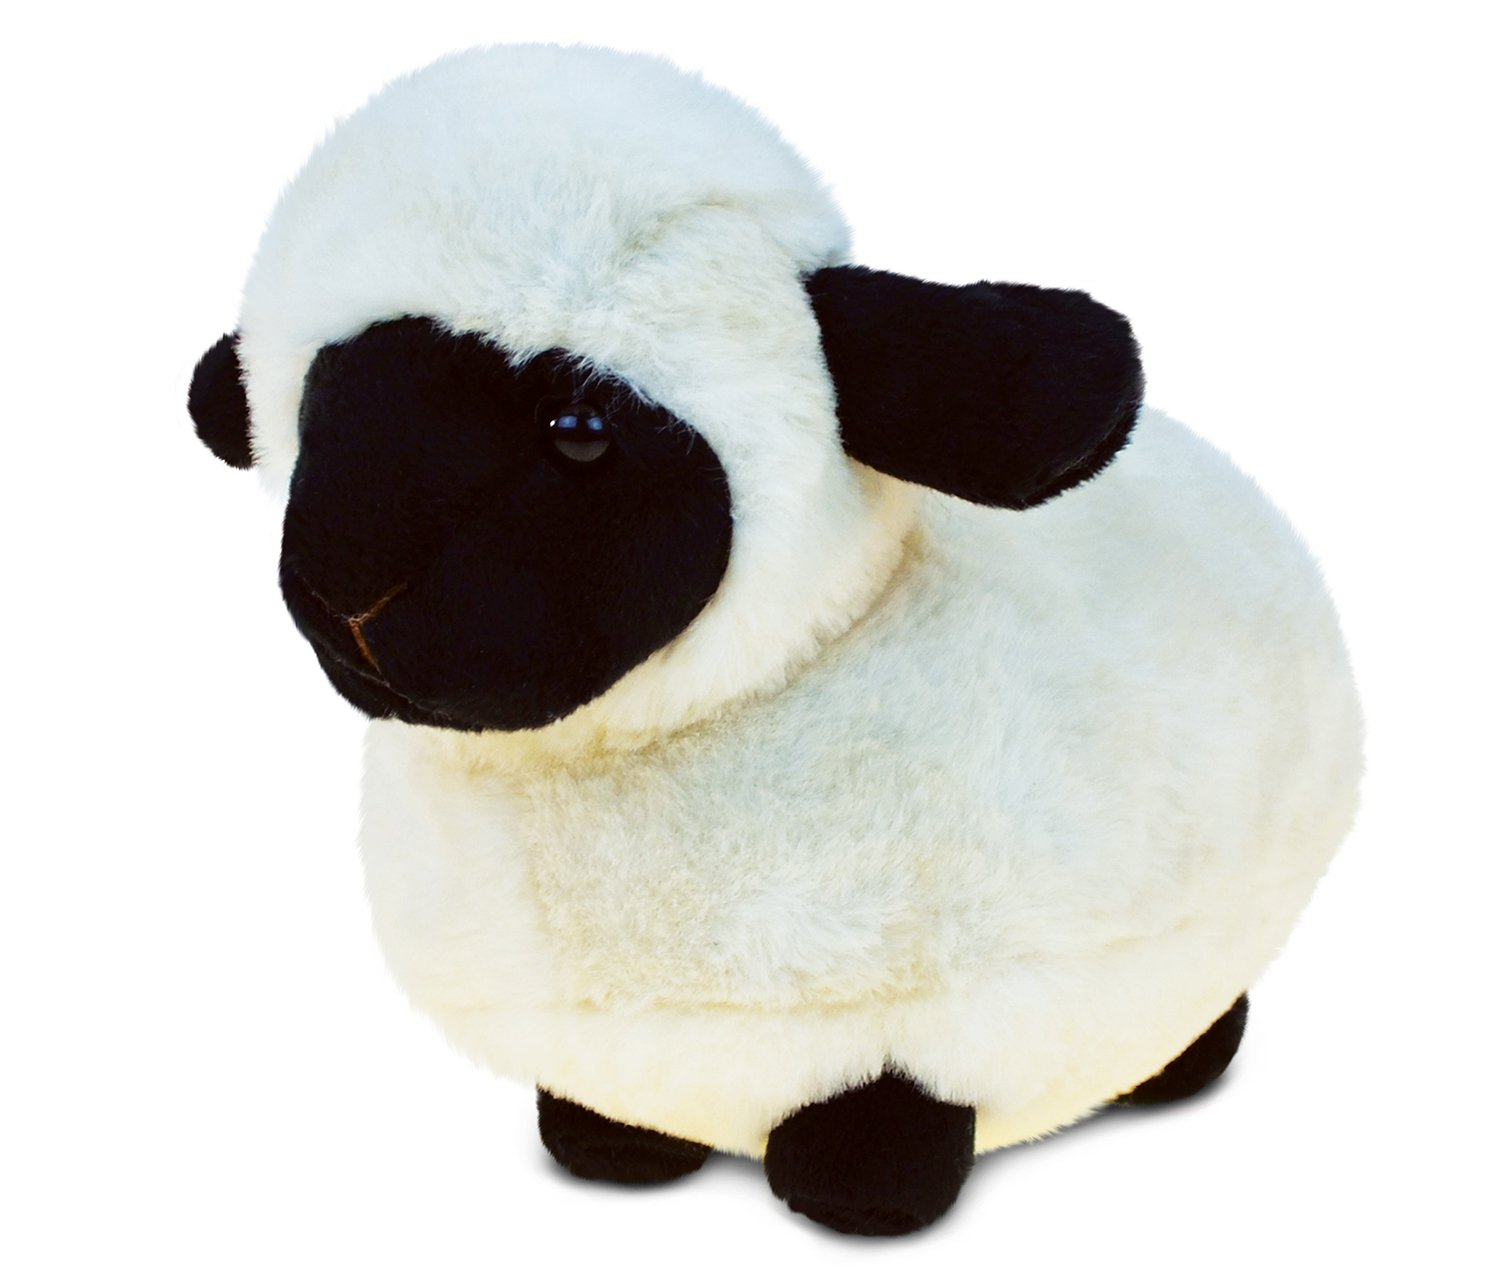 Puzzled Valais Black Nose Sheep Super Soft Stuffed Animal Toy Plush Cuddly Fuzzy Small Critter Size Item #5367 Inc. 8.5x4.5x6 inches No Age Restrictions Safe Non-Toxic Kids Huggable Bedtime Buddy